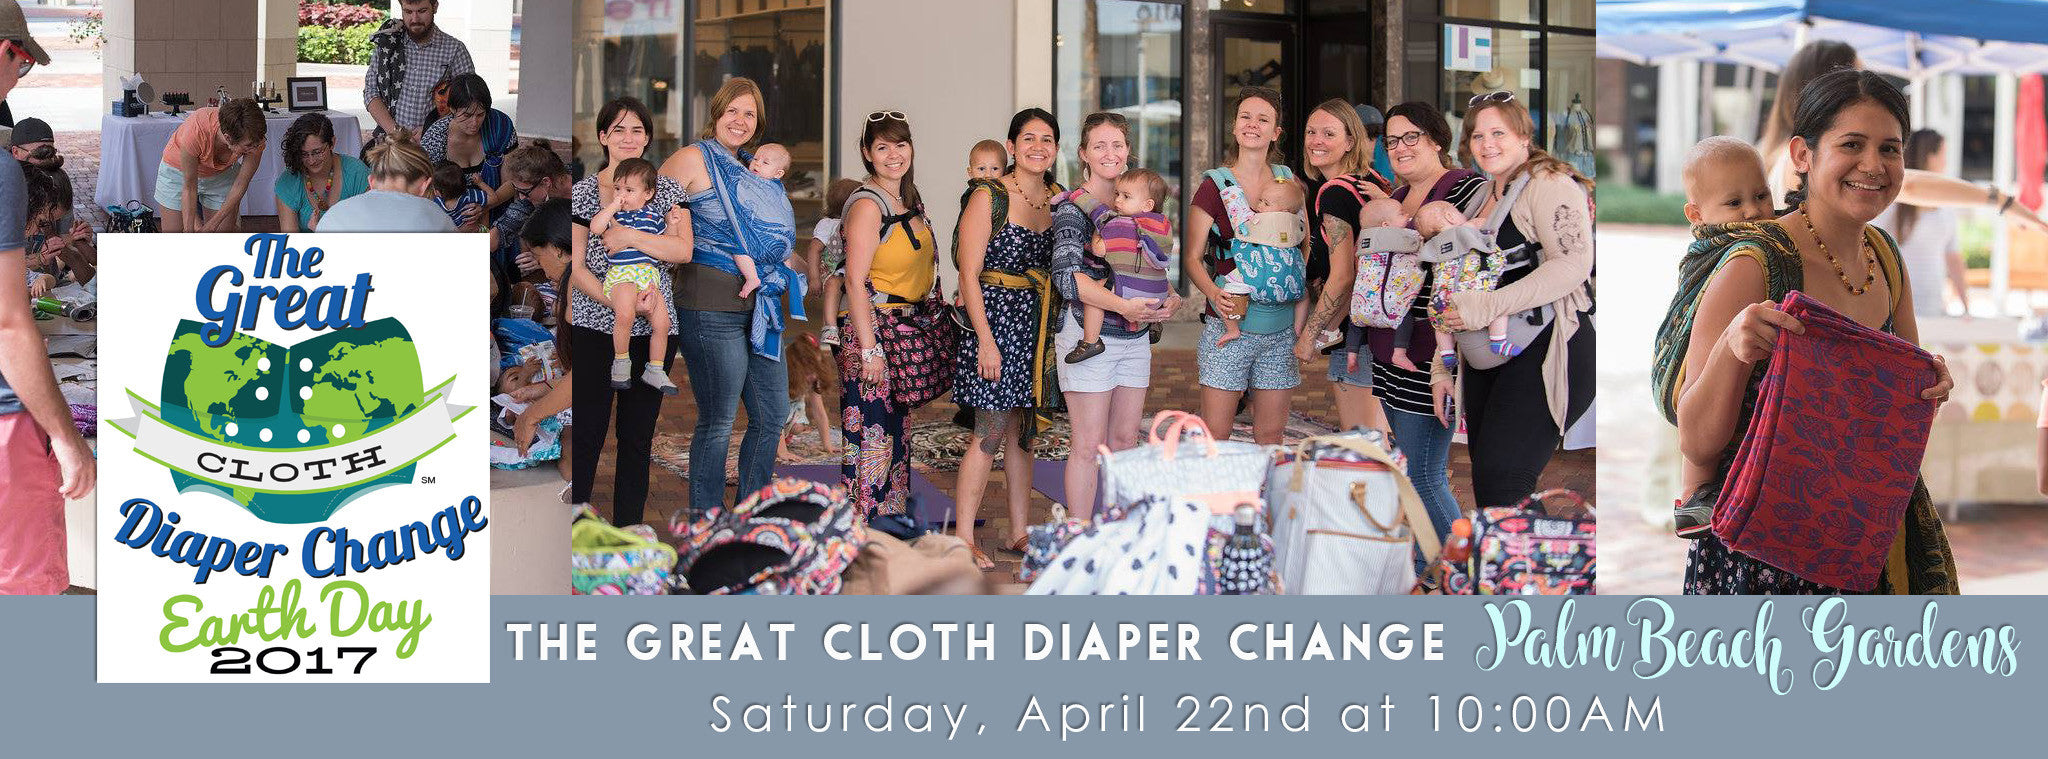 Great Cloth Diaper Change - Palm Beach Gardens 2017